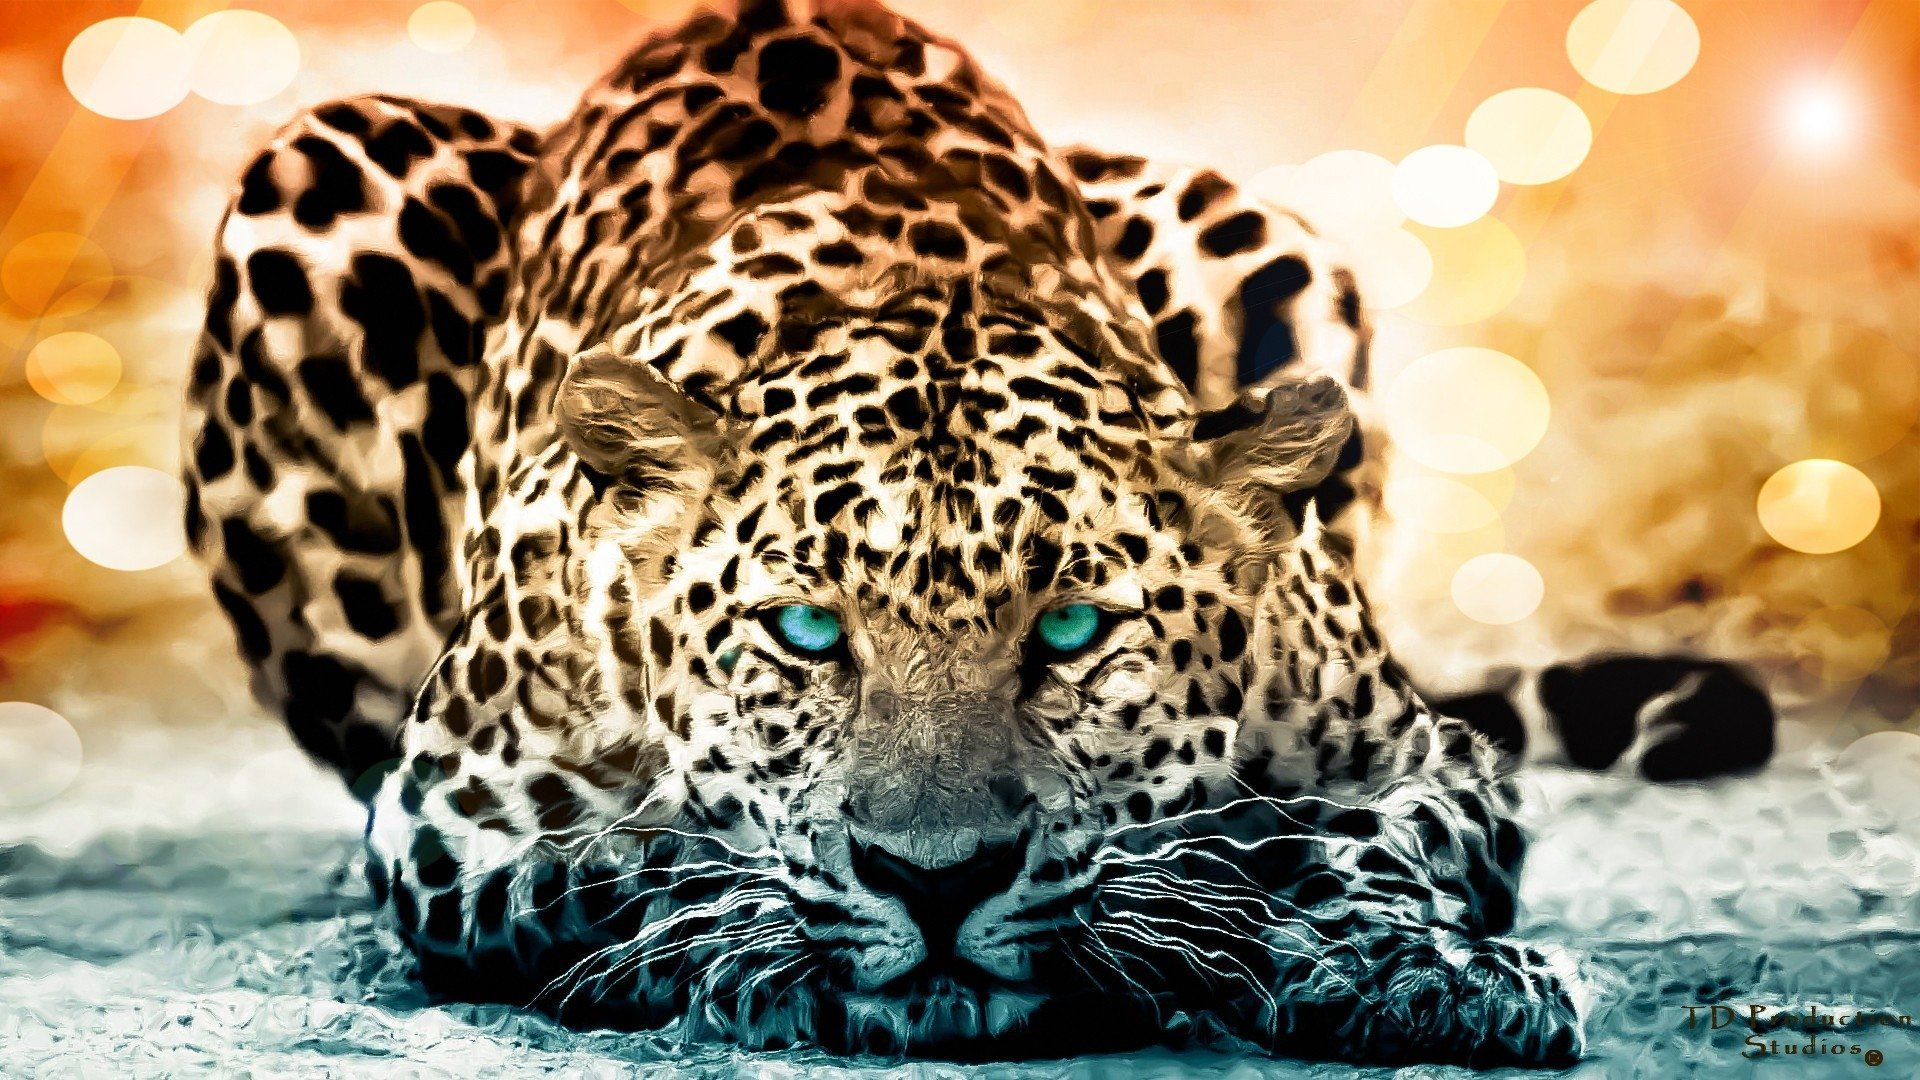 190 jaguar hd wallpapers backgrounds wallpaper abyss - Animal 1920x1080 ...